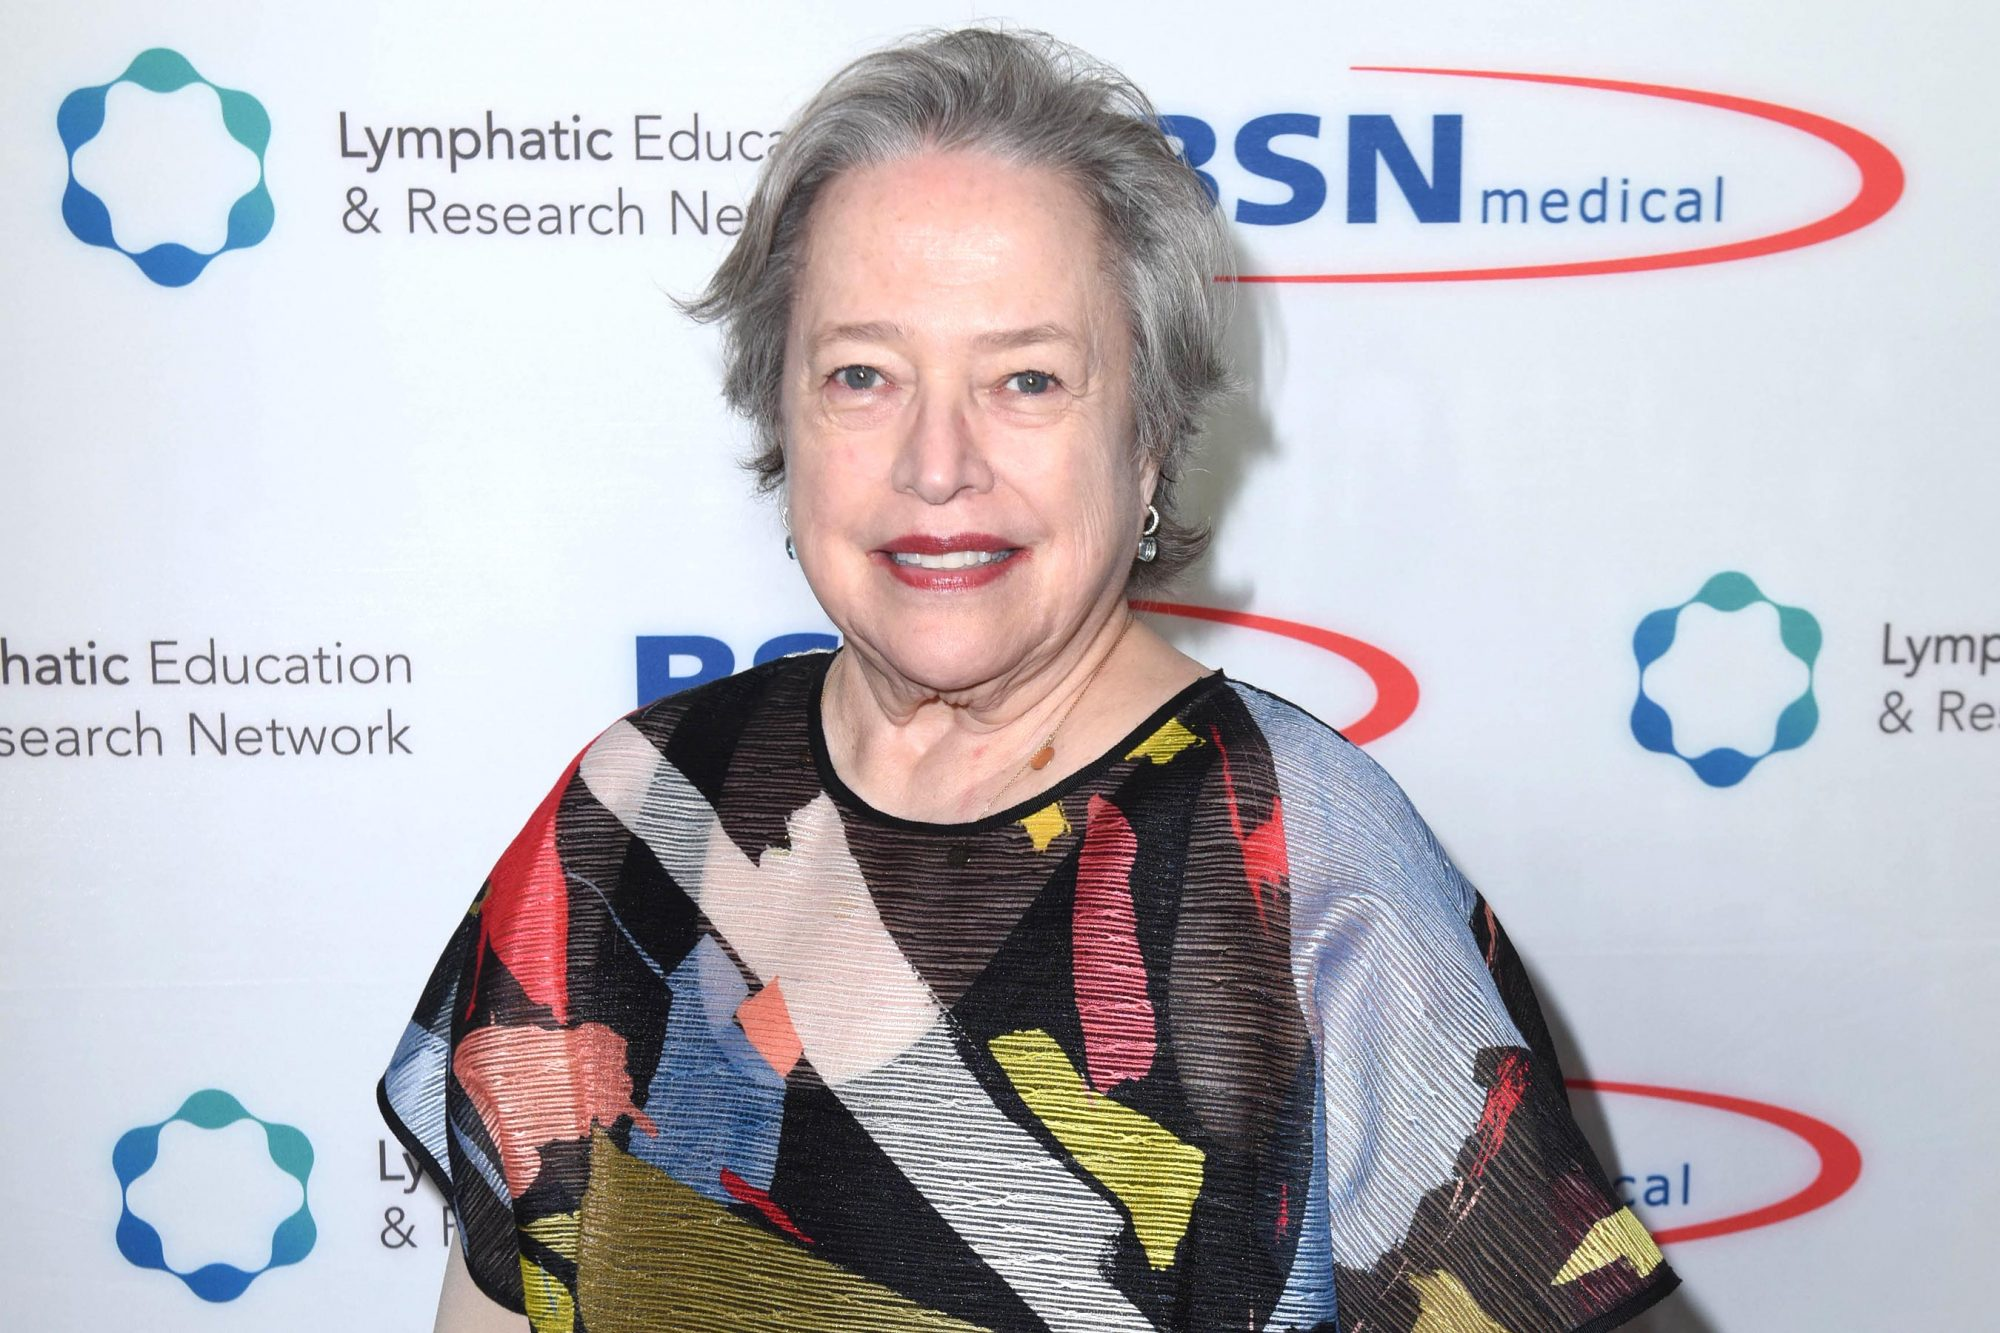 Academy Award Winner and LE&RN Spokesperson Kathy Bates Hosts Reception On The Eve Of The Third Annual California Run/Walk to Fight Lymphedema & Lymphatic Diseases